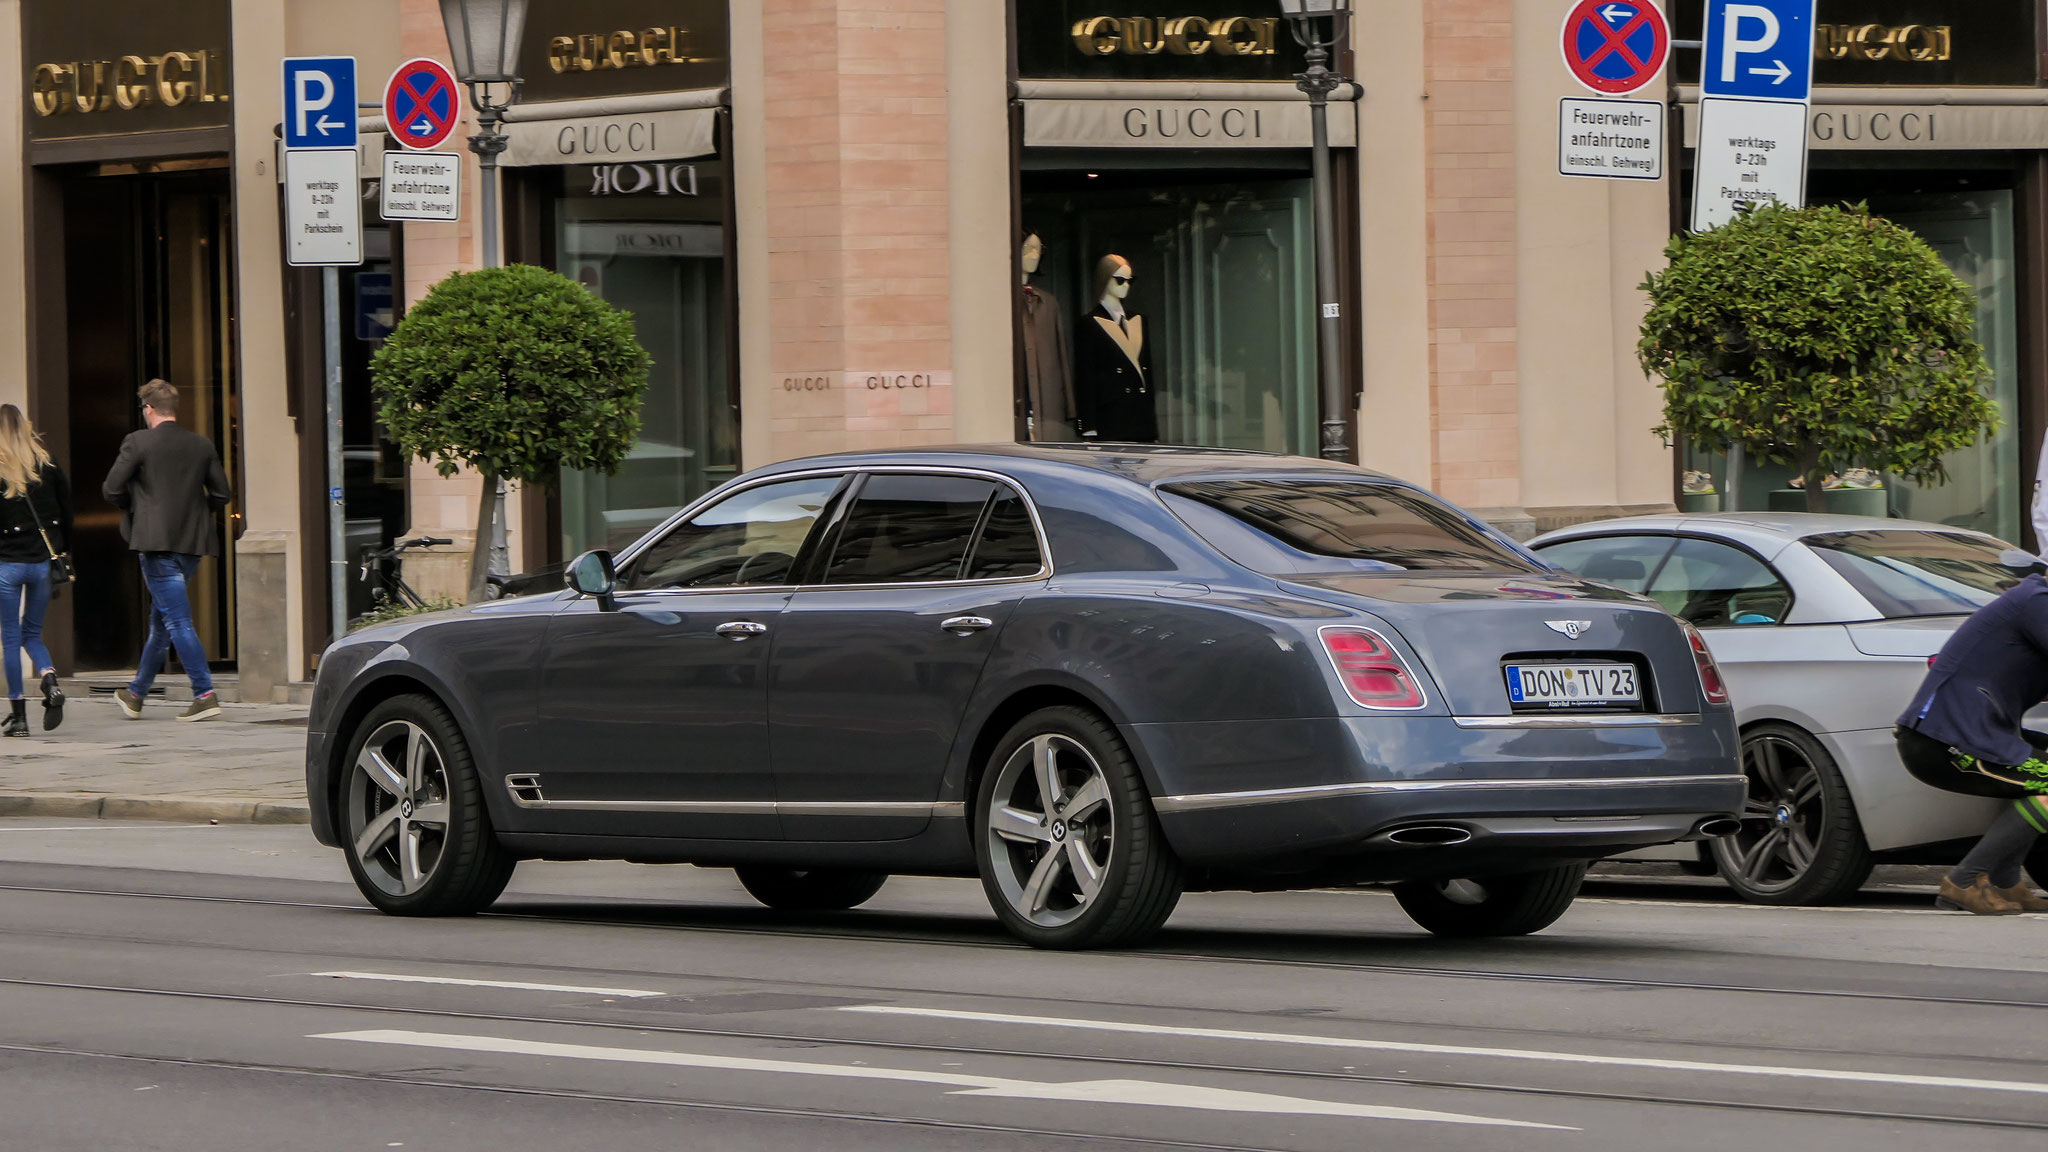 Bentley Mulsanne - DON-TV-23